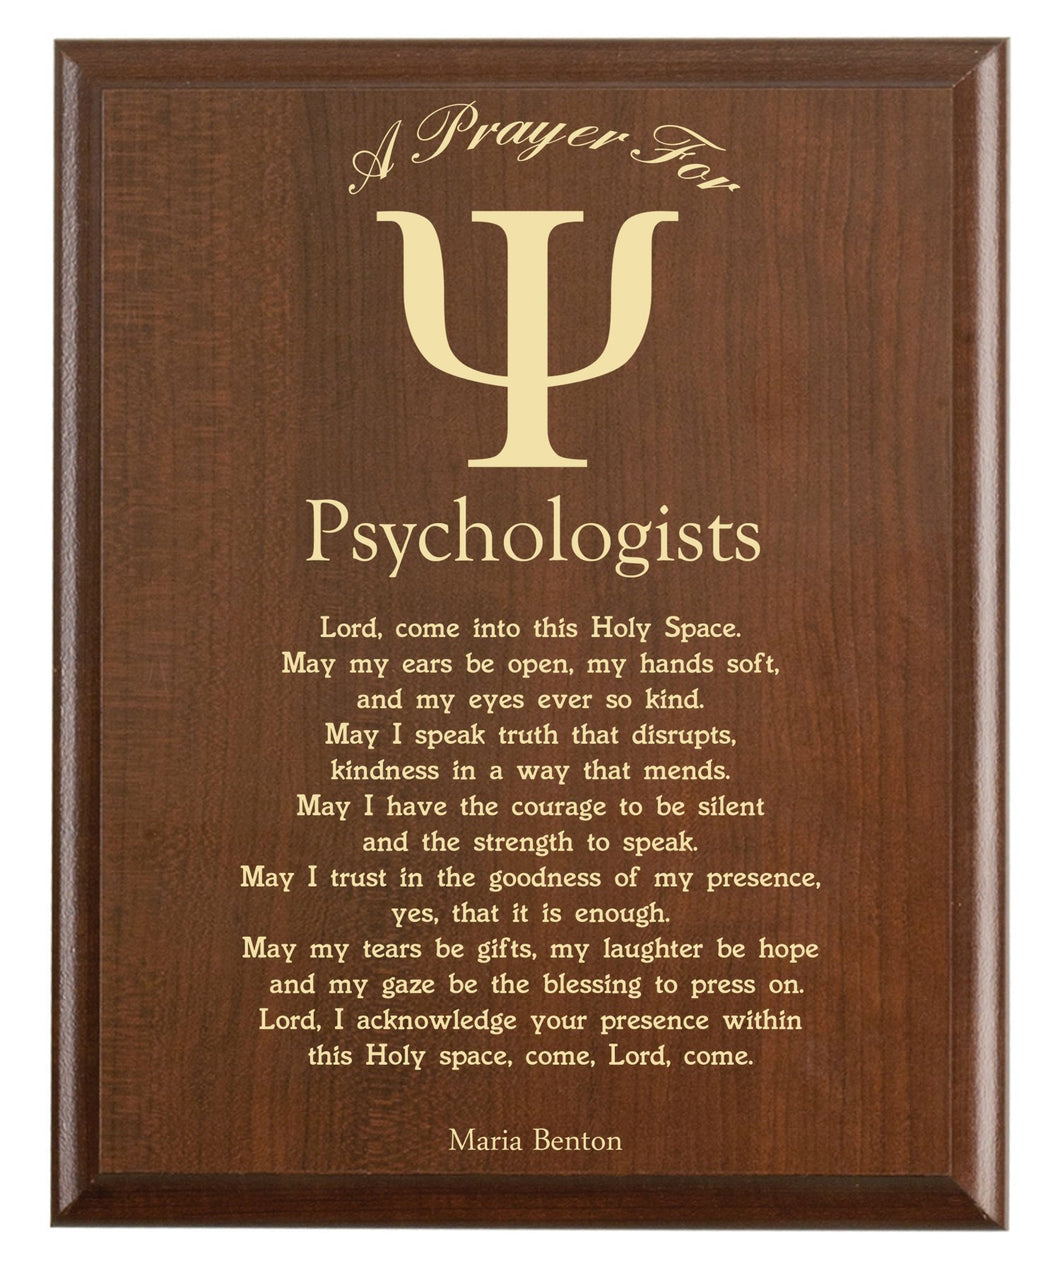 Christian prayer for a psychologist with industry logo and free personalization. Cherry finish with laser engraved text.